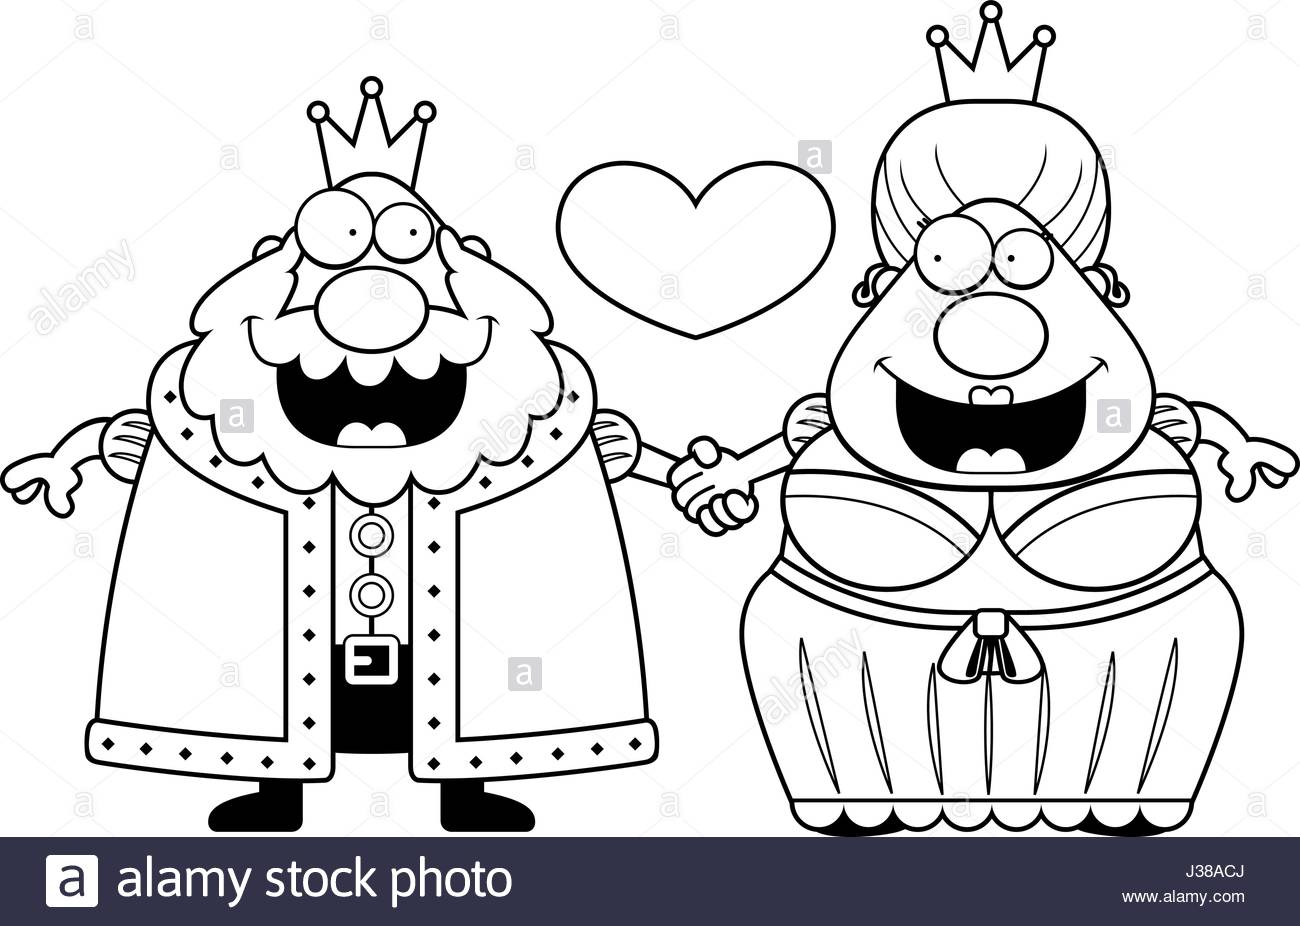 1300x926 A Cartoon Illustration Of A King And Queen Holding Hands And